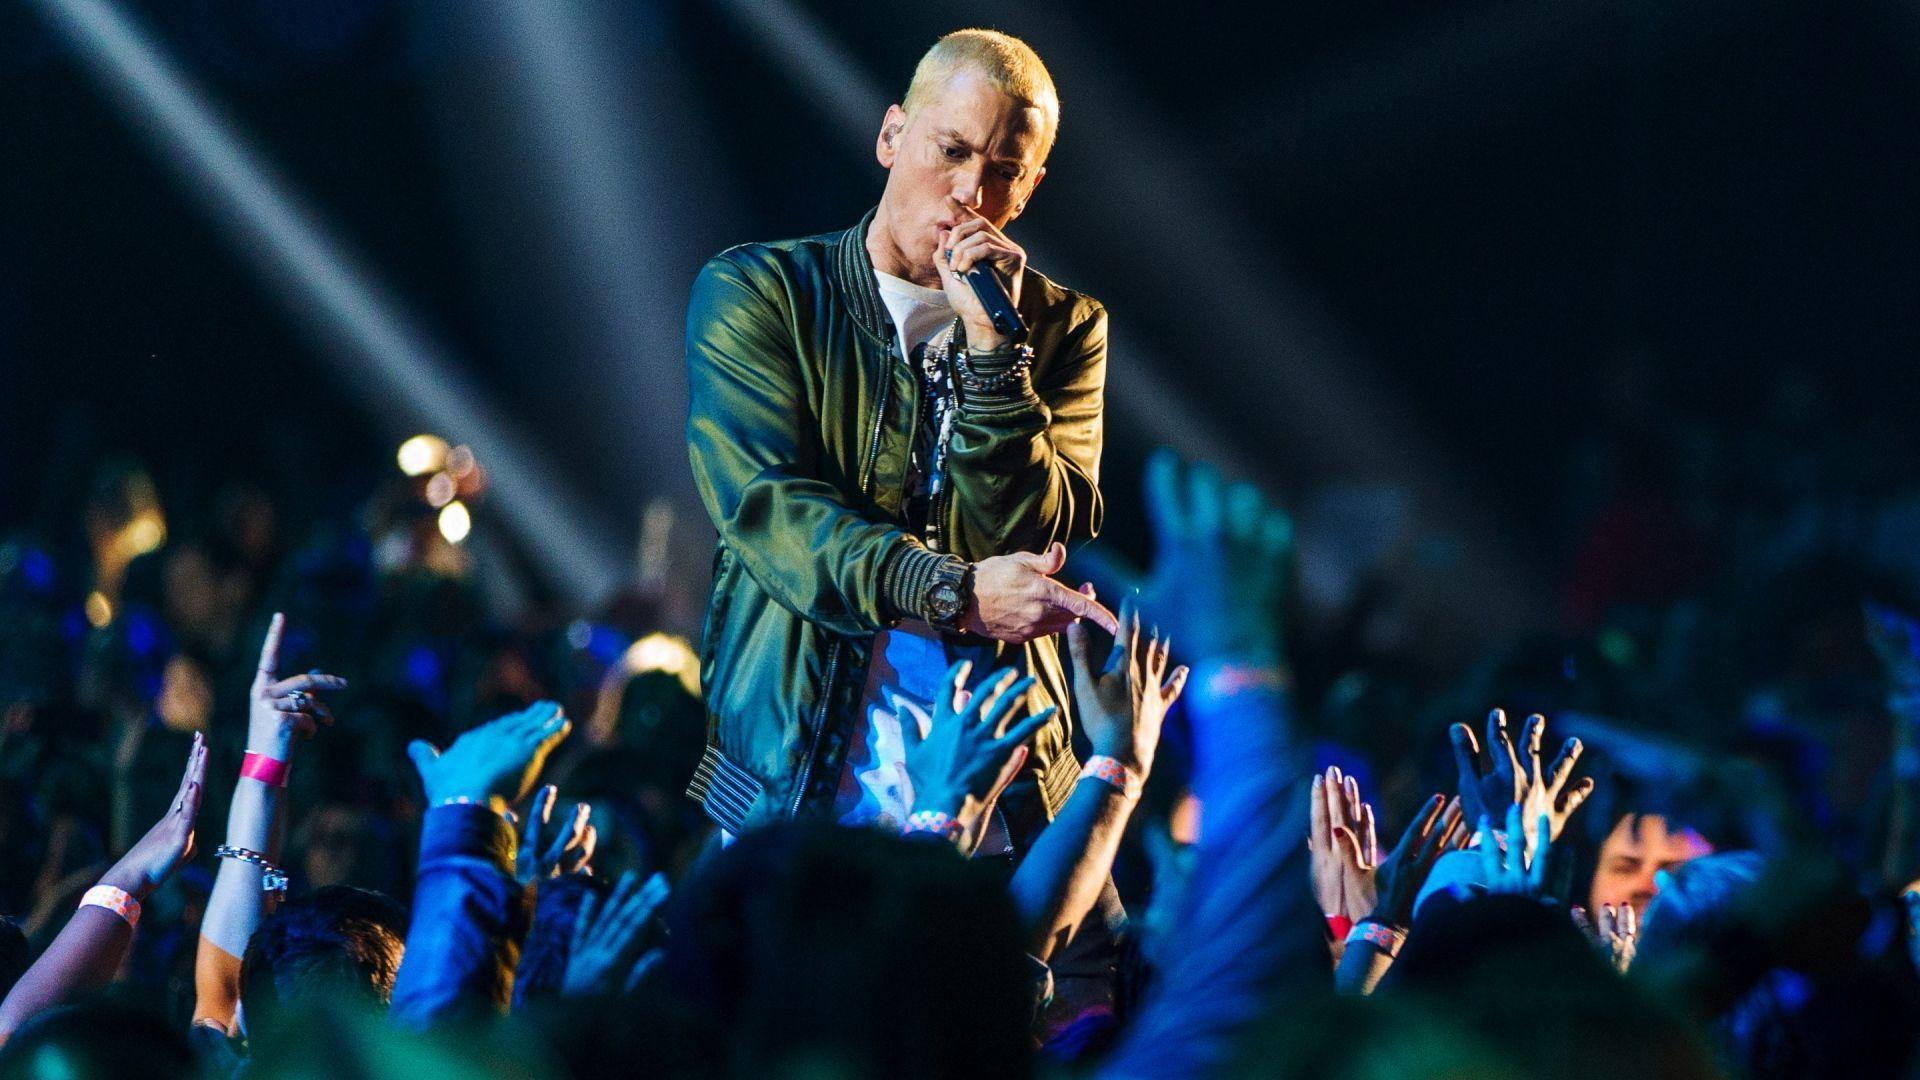 Eminem Singer Wallpaper | Wallpapers, Backgrounds, Images, Art Photos.